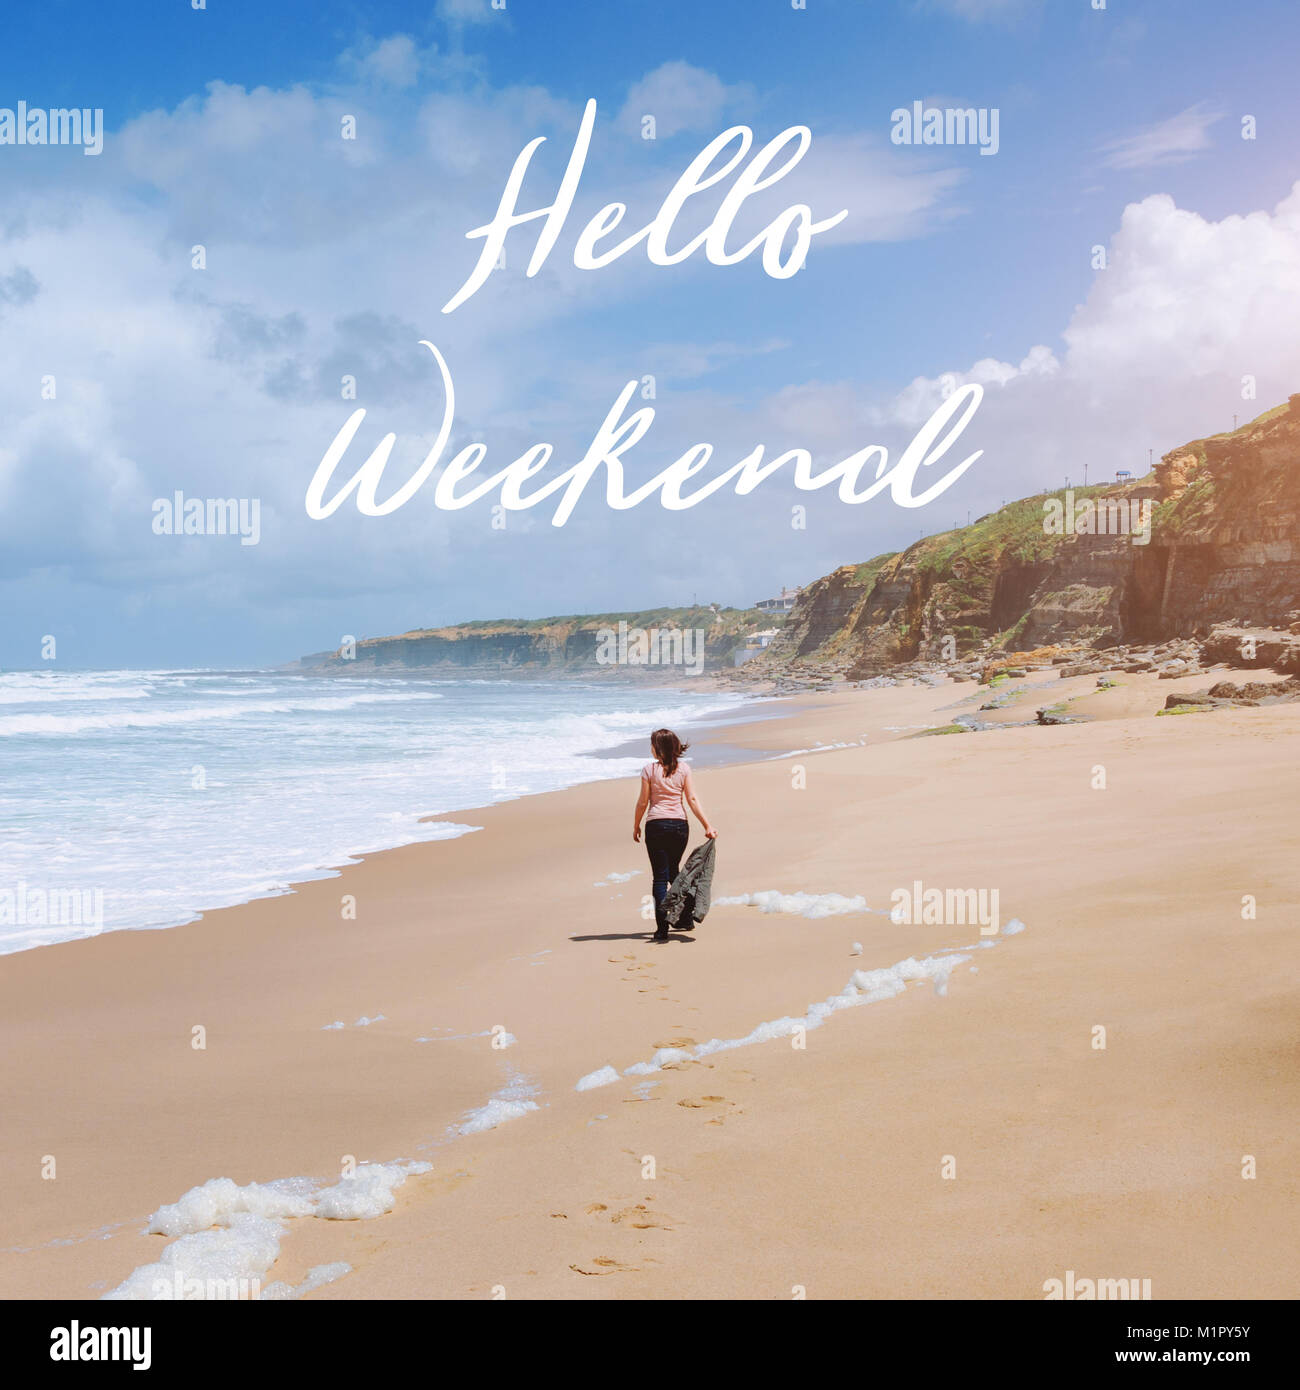 Lonely Weekend Quotes: Lonely Traveler Stock Photos & Lonely Traveler Stock